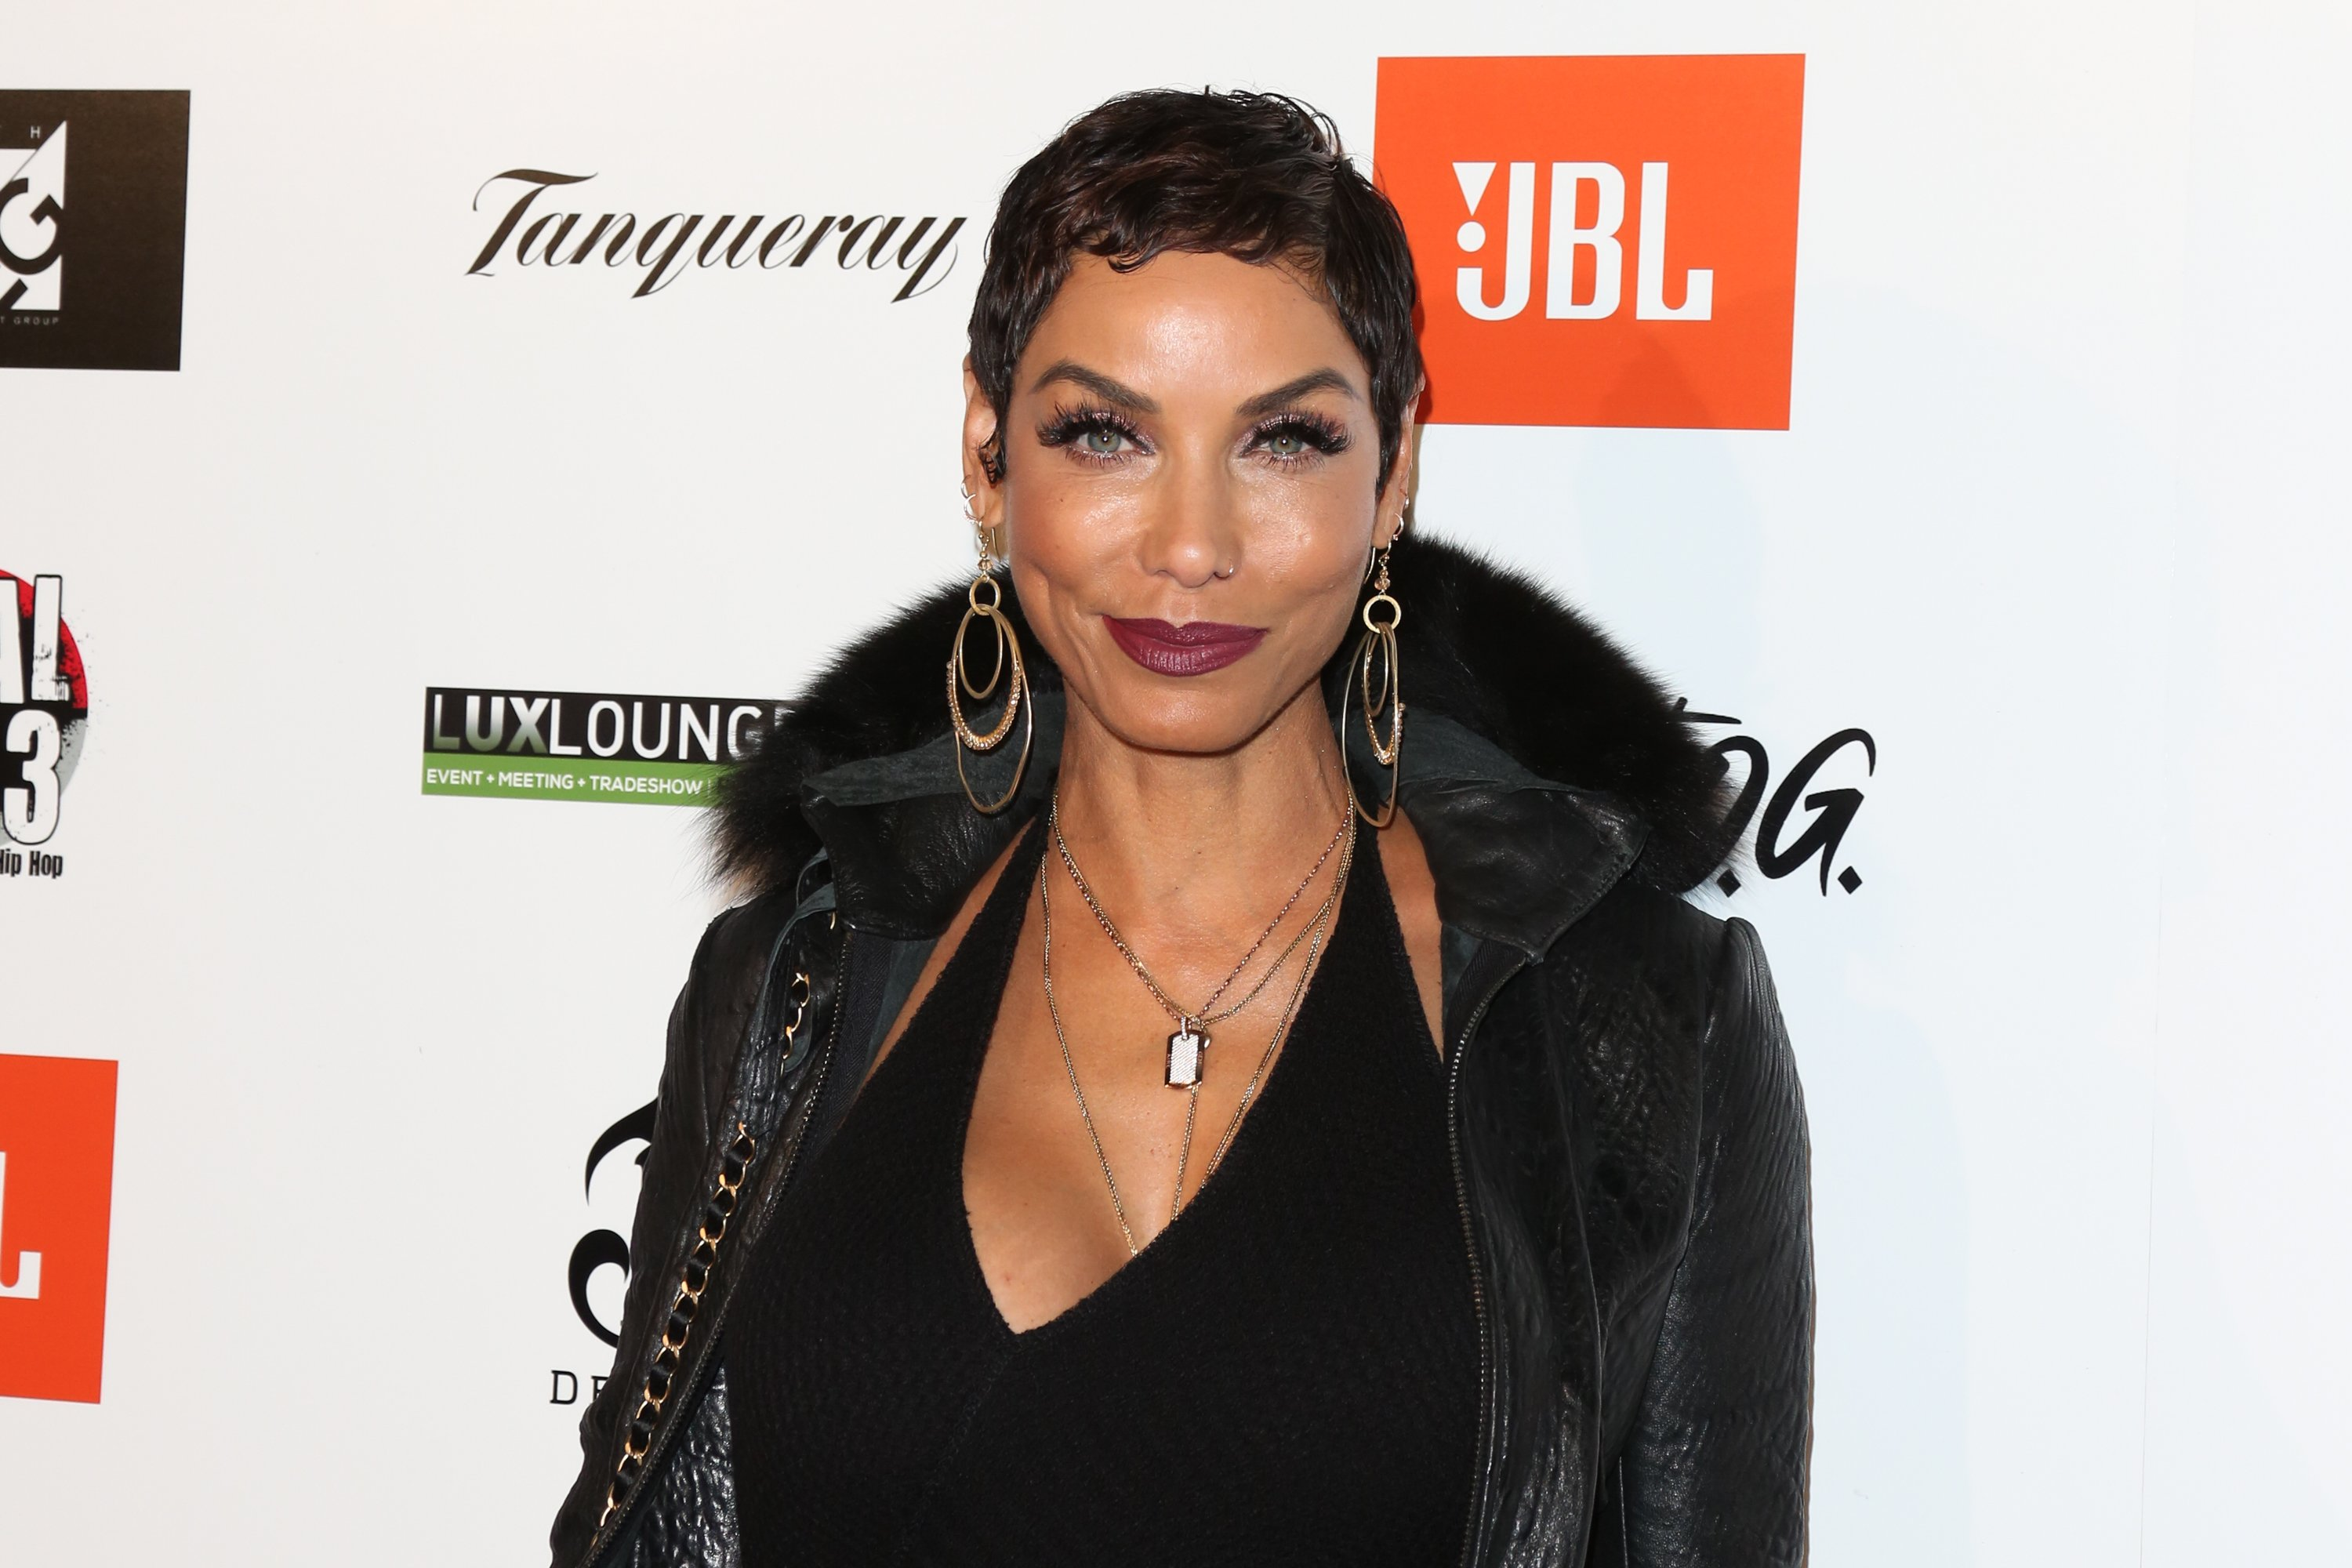 Nicole Murphy attending a JBL all-star bash in February 2018. | Photo: Getty Images